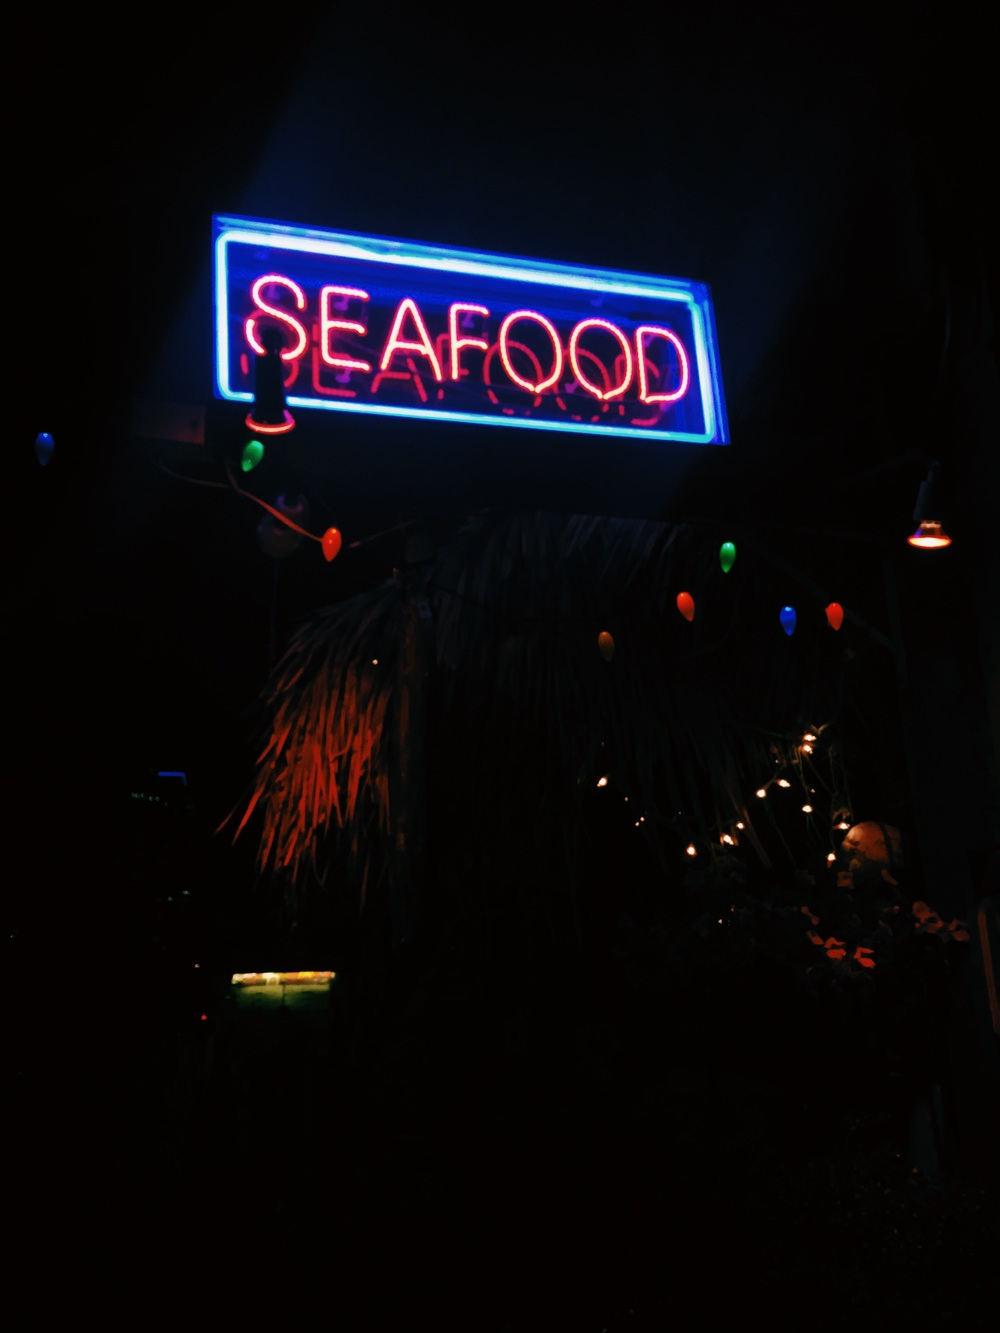 Surf Bar's neon 'Seafood' sign out front